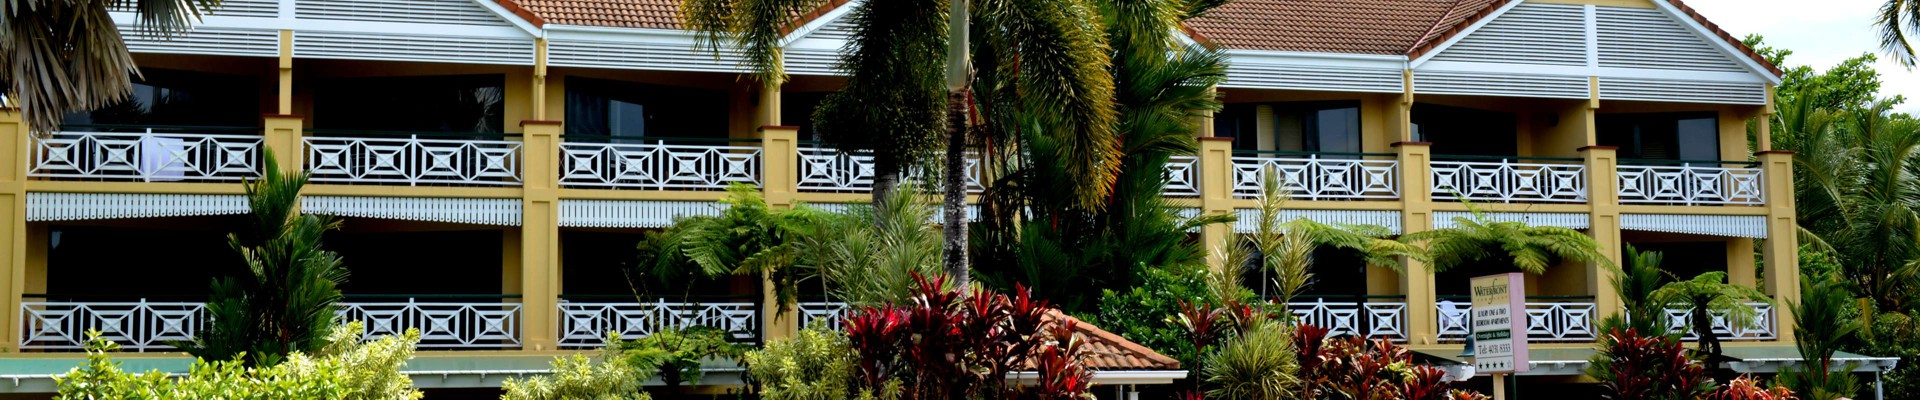 waterfront accommodation in cairns city